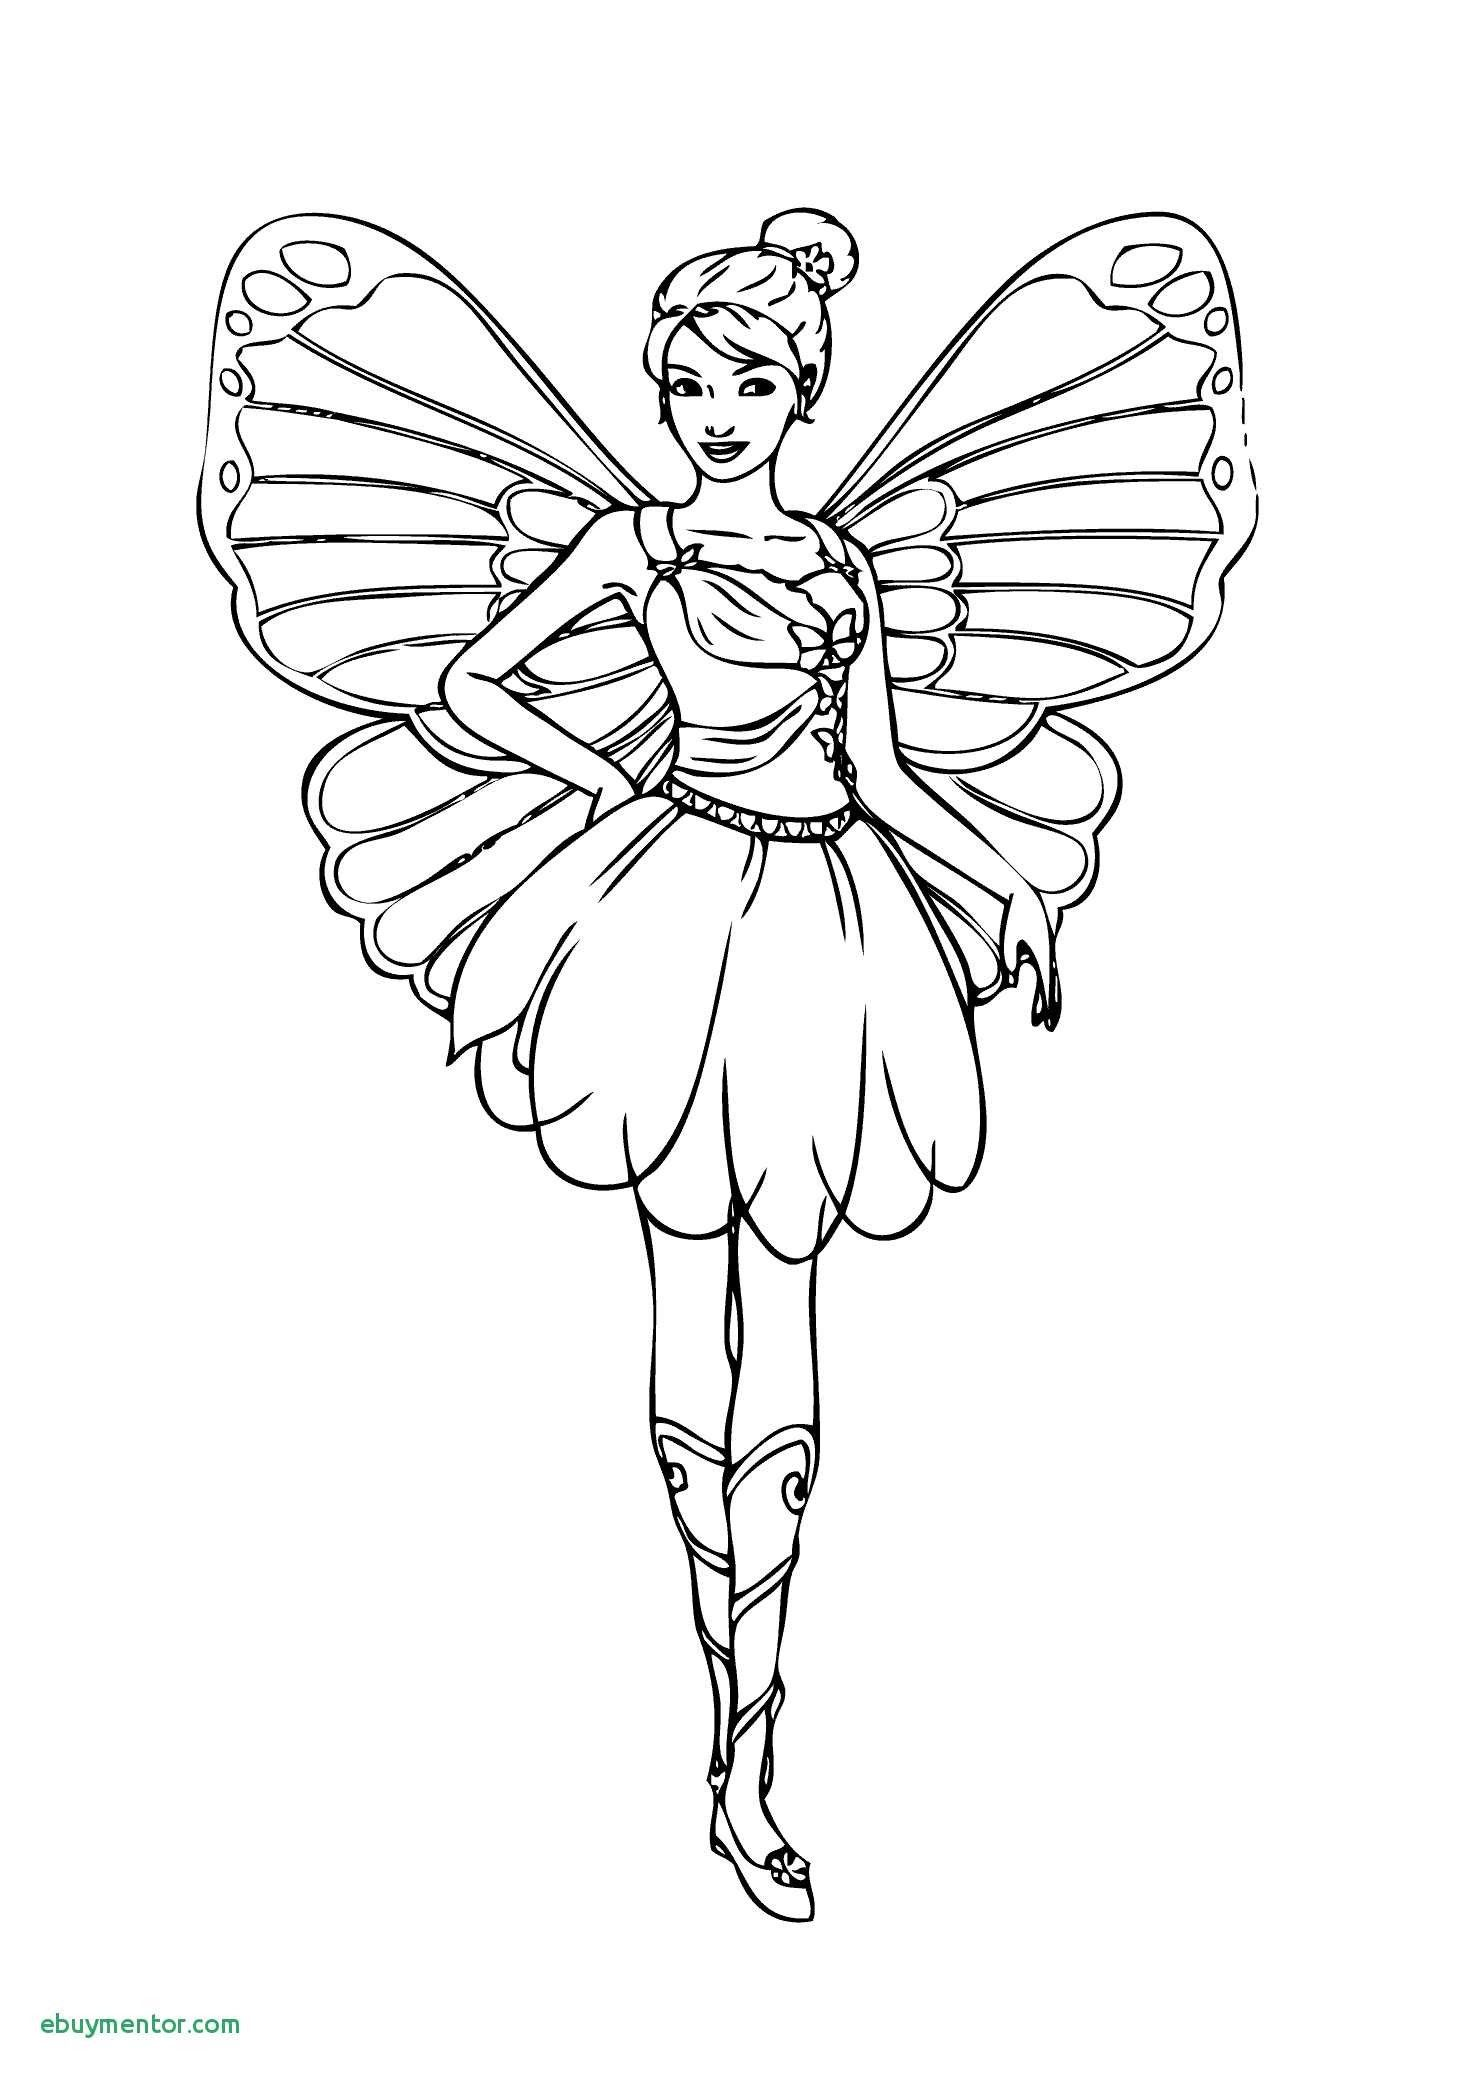 Barbie Fairy Coloring Pages Through The Thousands Of Pictures On The Web Regarding Barbi Fairy Coloring Coloring Pages For Girls Coloring Pages Inspirational